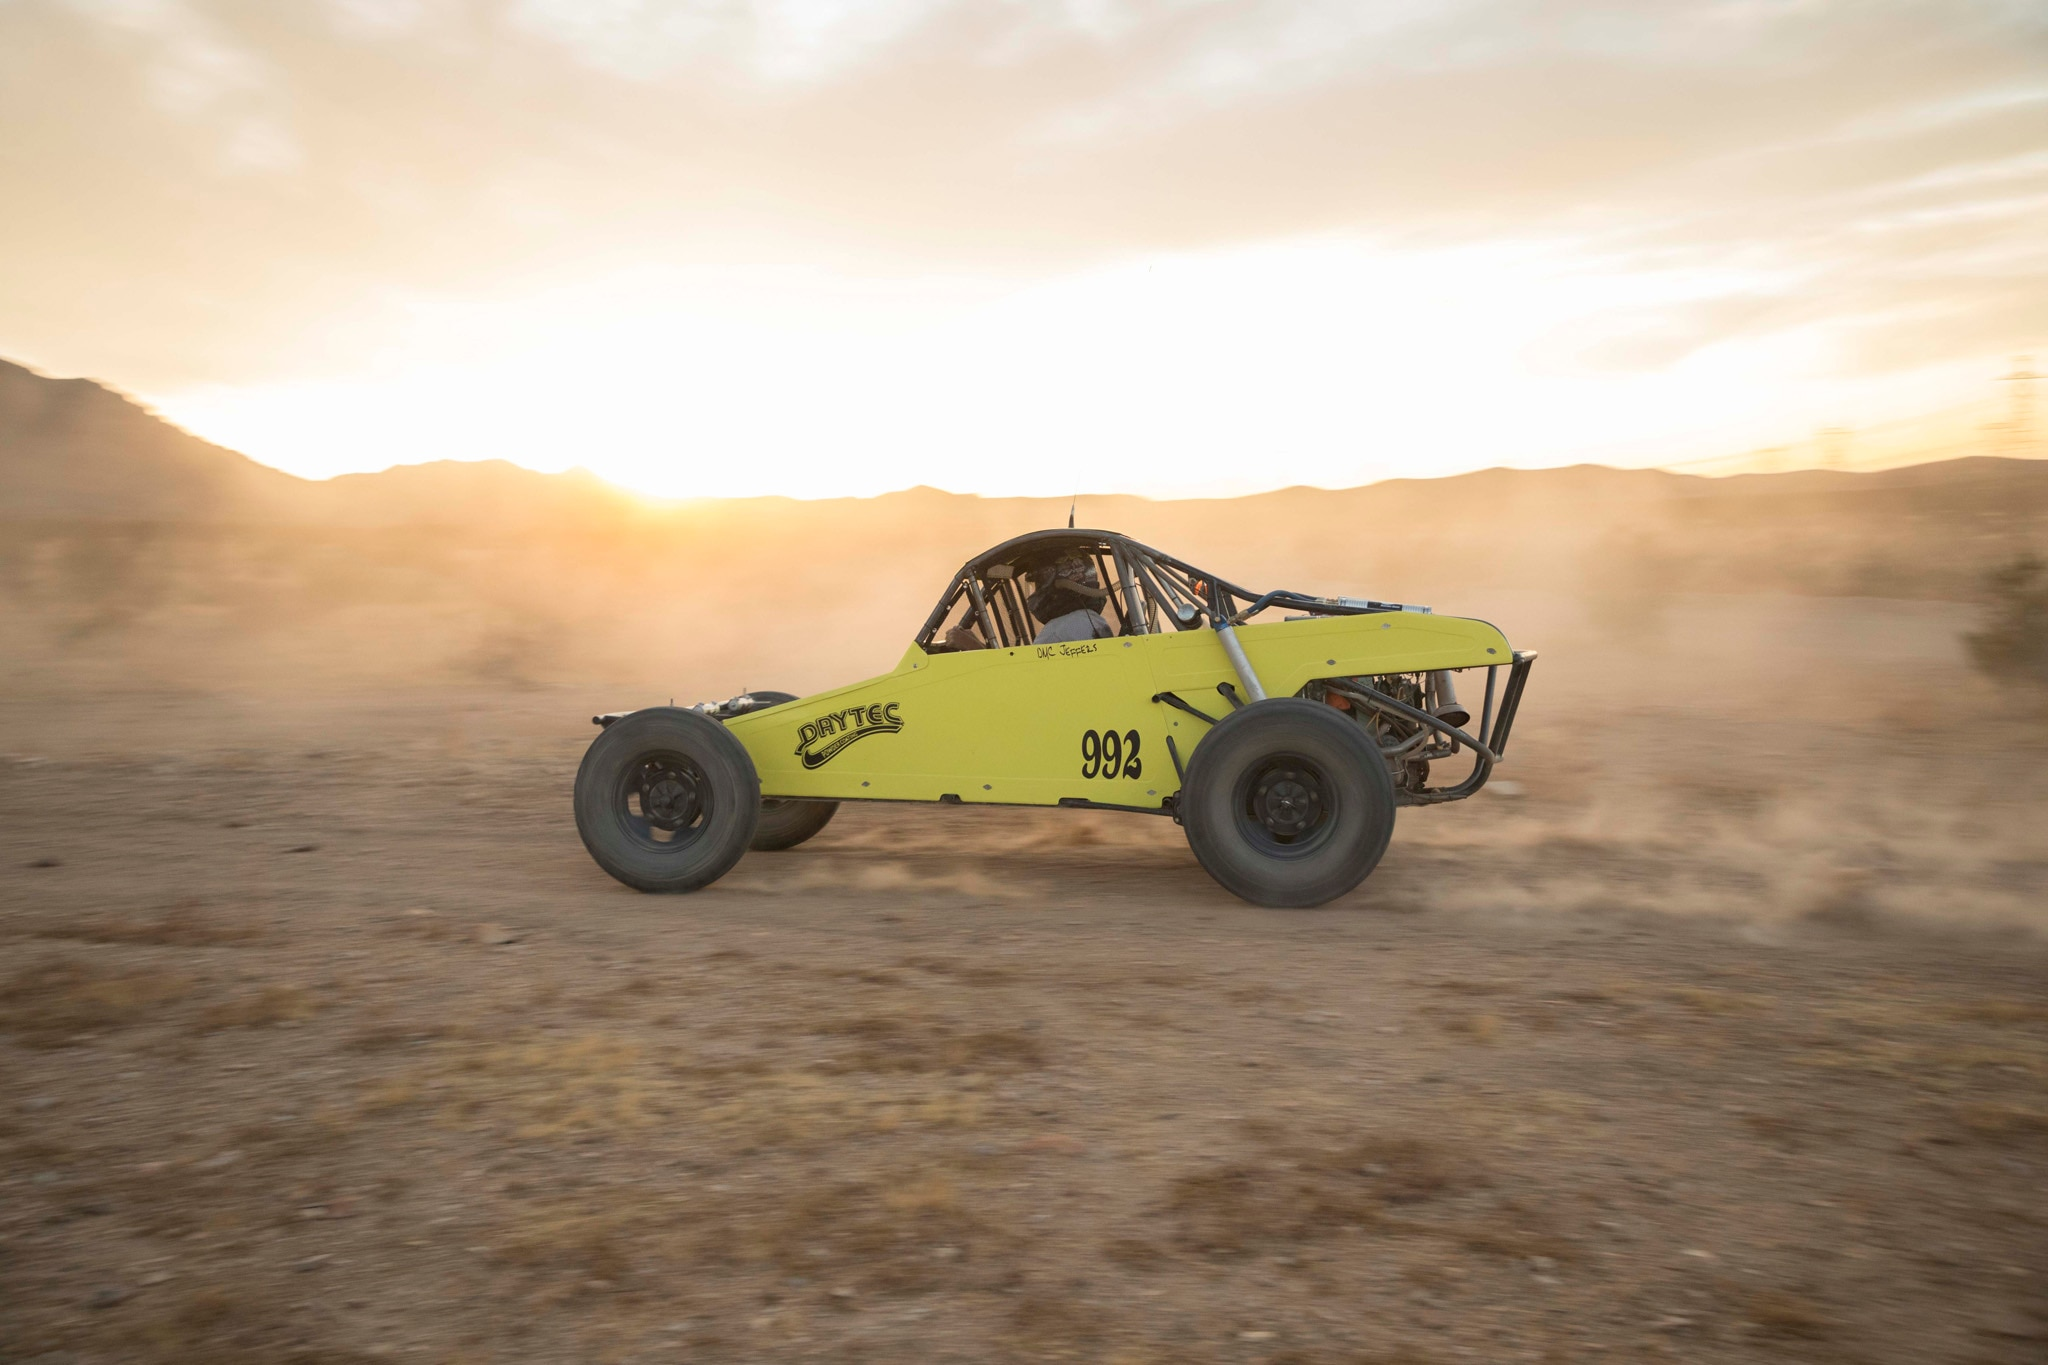 Celebrating 50 Years of Volkswagen in Baja with a Blast Through the